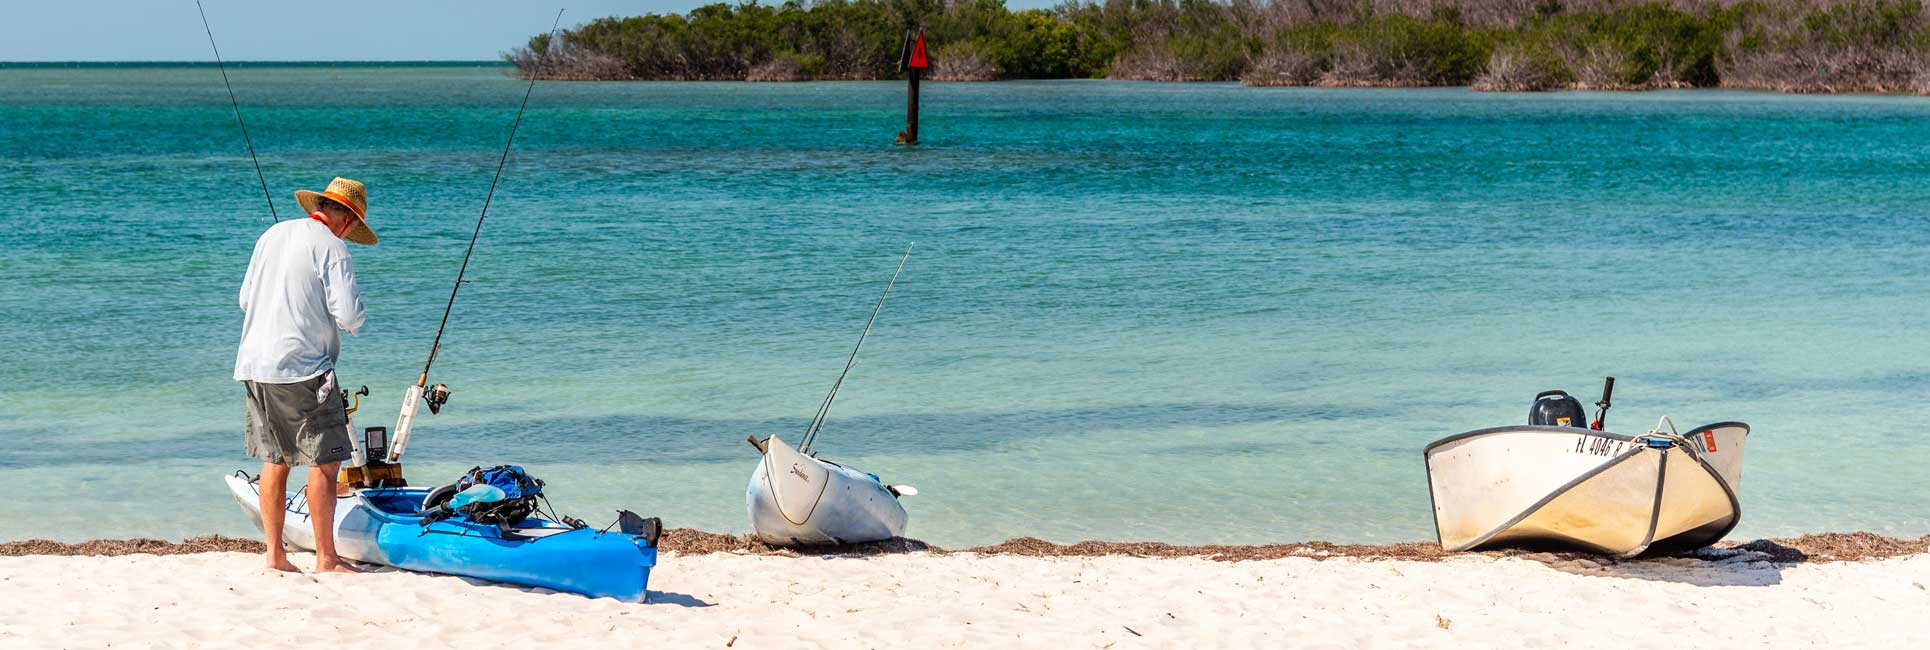 A man preparing for a chartered kayak fishing trip in key west Florida on the beach